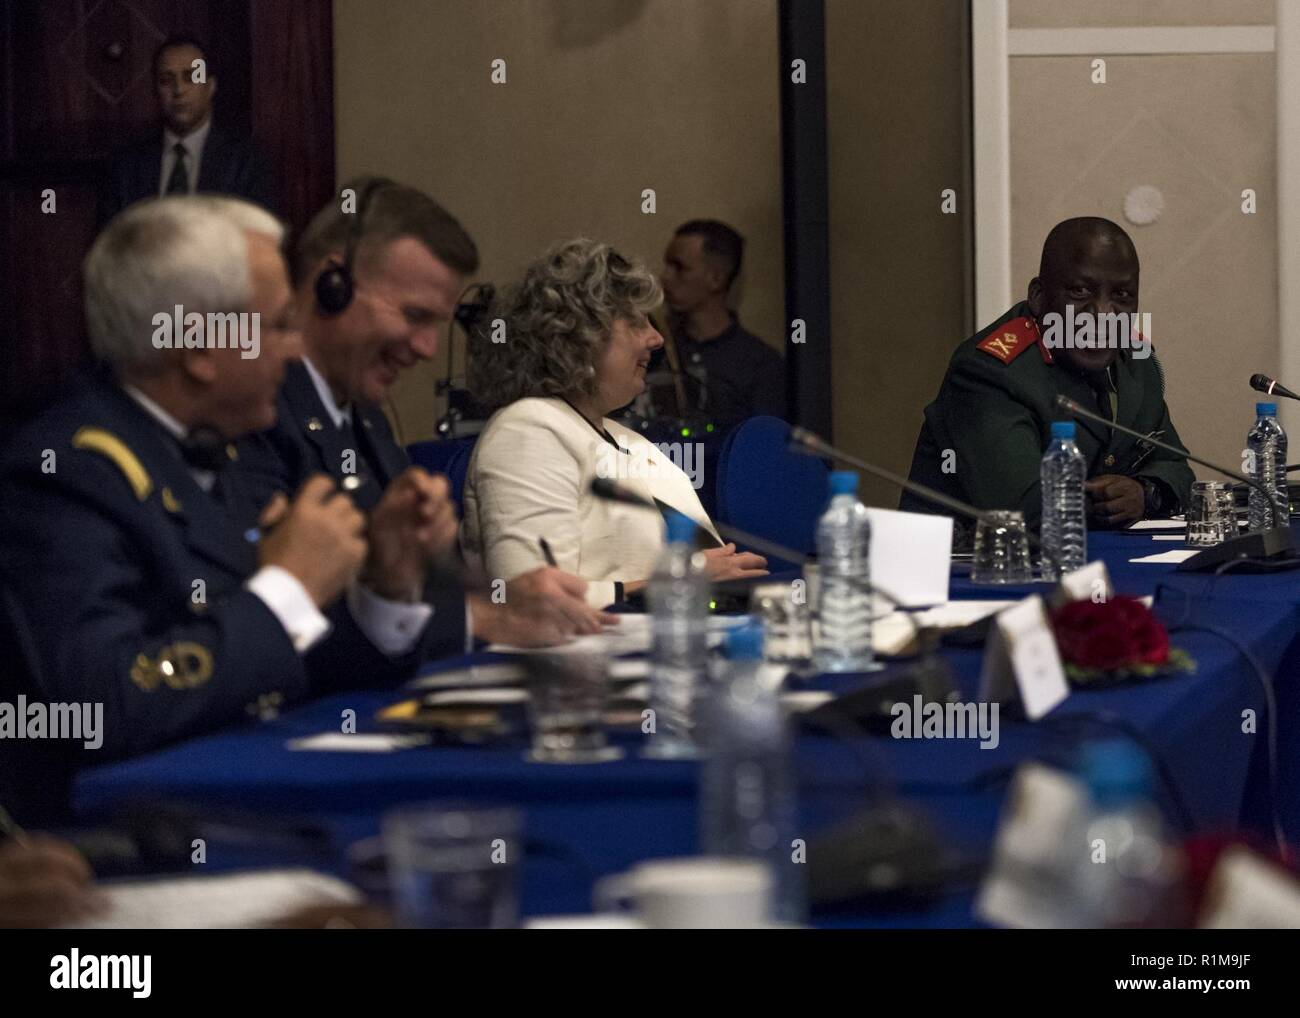 MARRAKECH, Morocco (Oct 22, 2018) Major General Seleka Phatshwane, Right, Air Arm Commander of the Botswana Defence Force, addresses a room of senior African and U.S. officials, including Chargé d'Affaires Stephanie Miley, at the 8th annual African Air Chiefs Symposium. The purpose of the symposium is to create a forum for air chiefs from across the African continent to come together to address regional and continental issues, enhance relationships and increase cooperation. - Stock Image